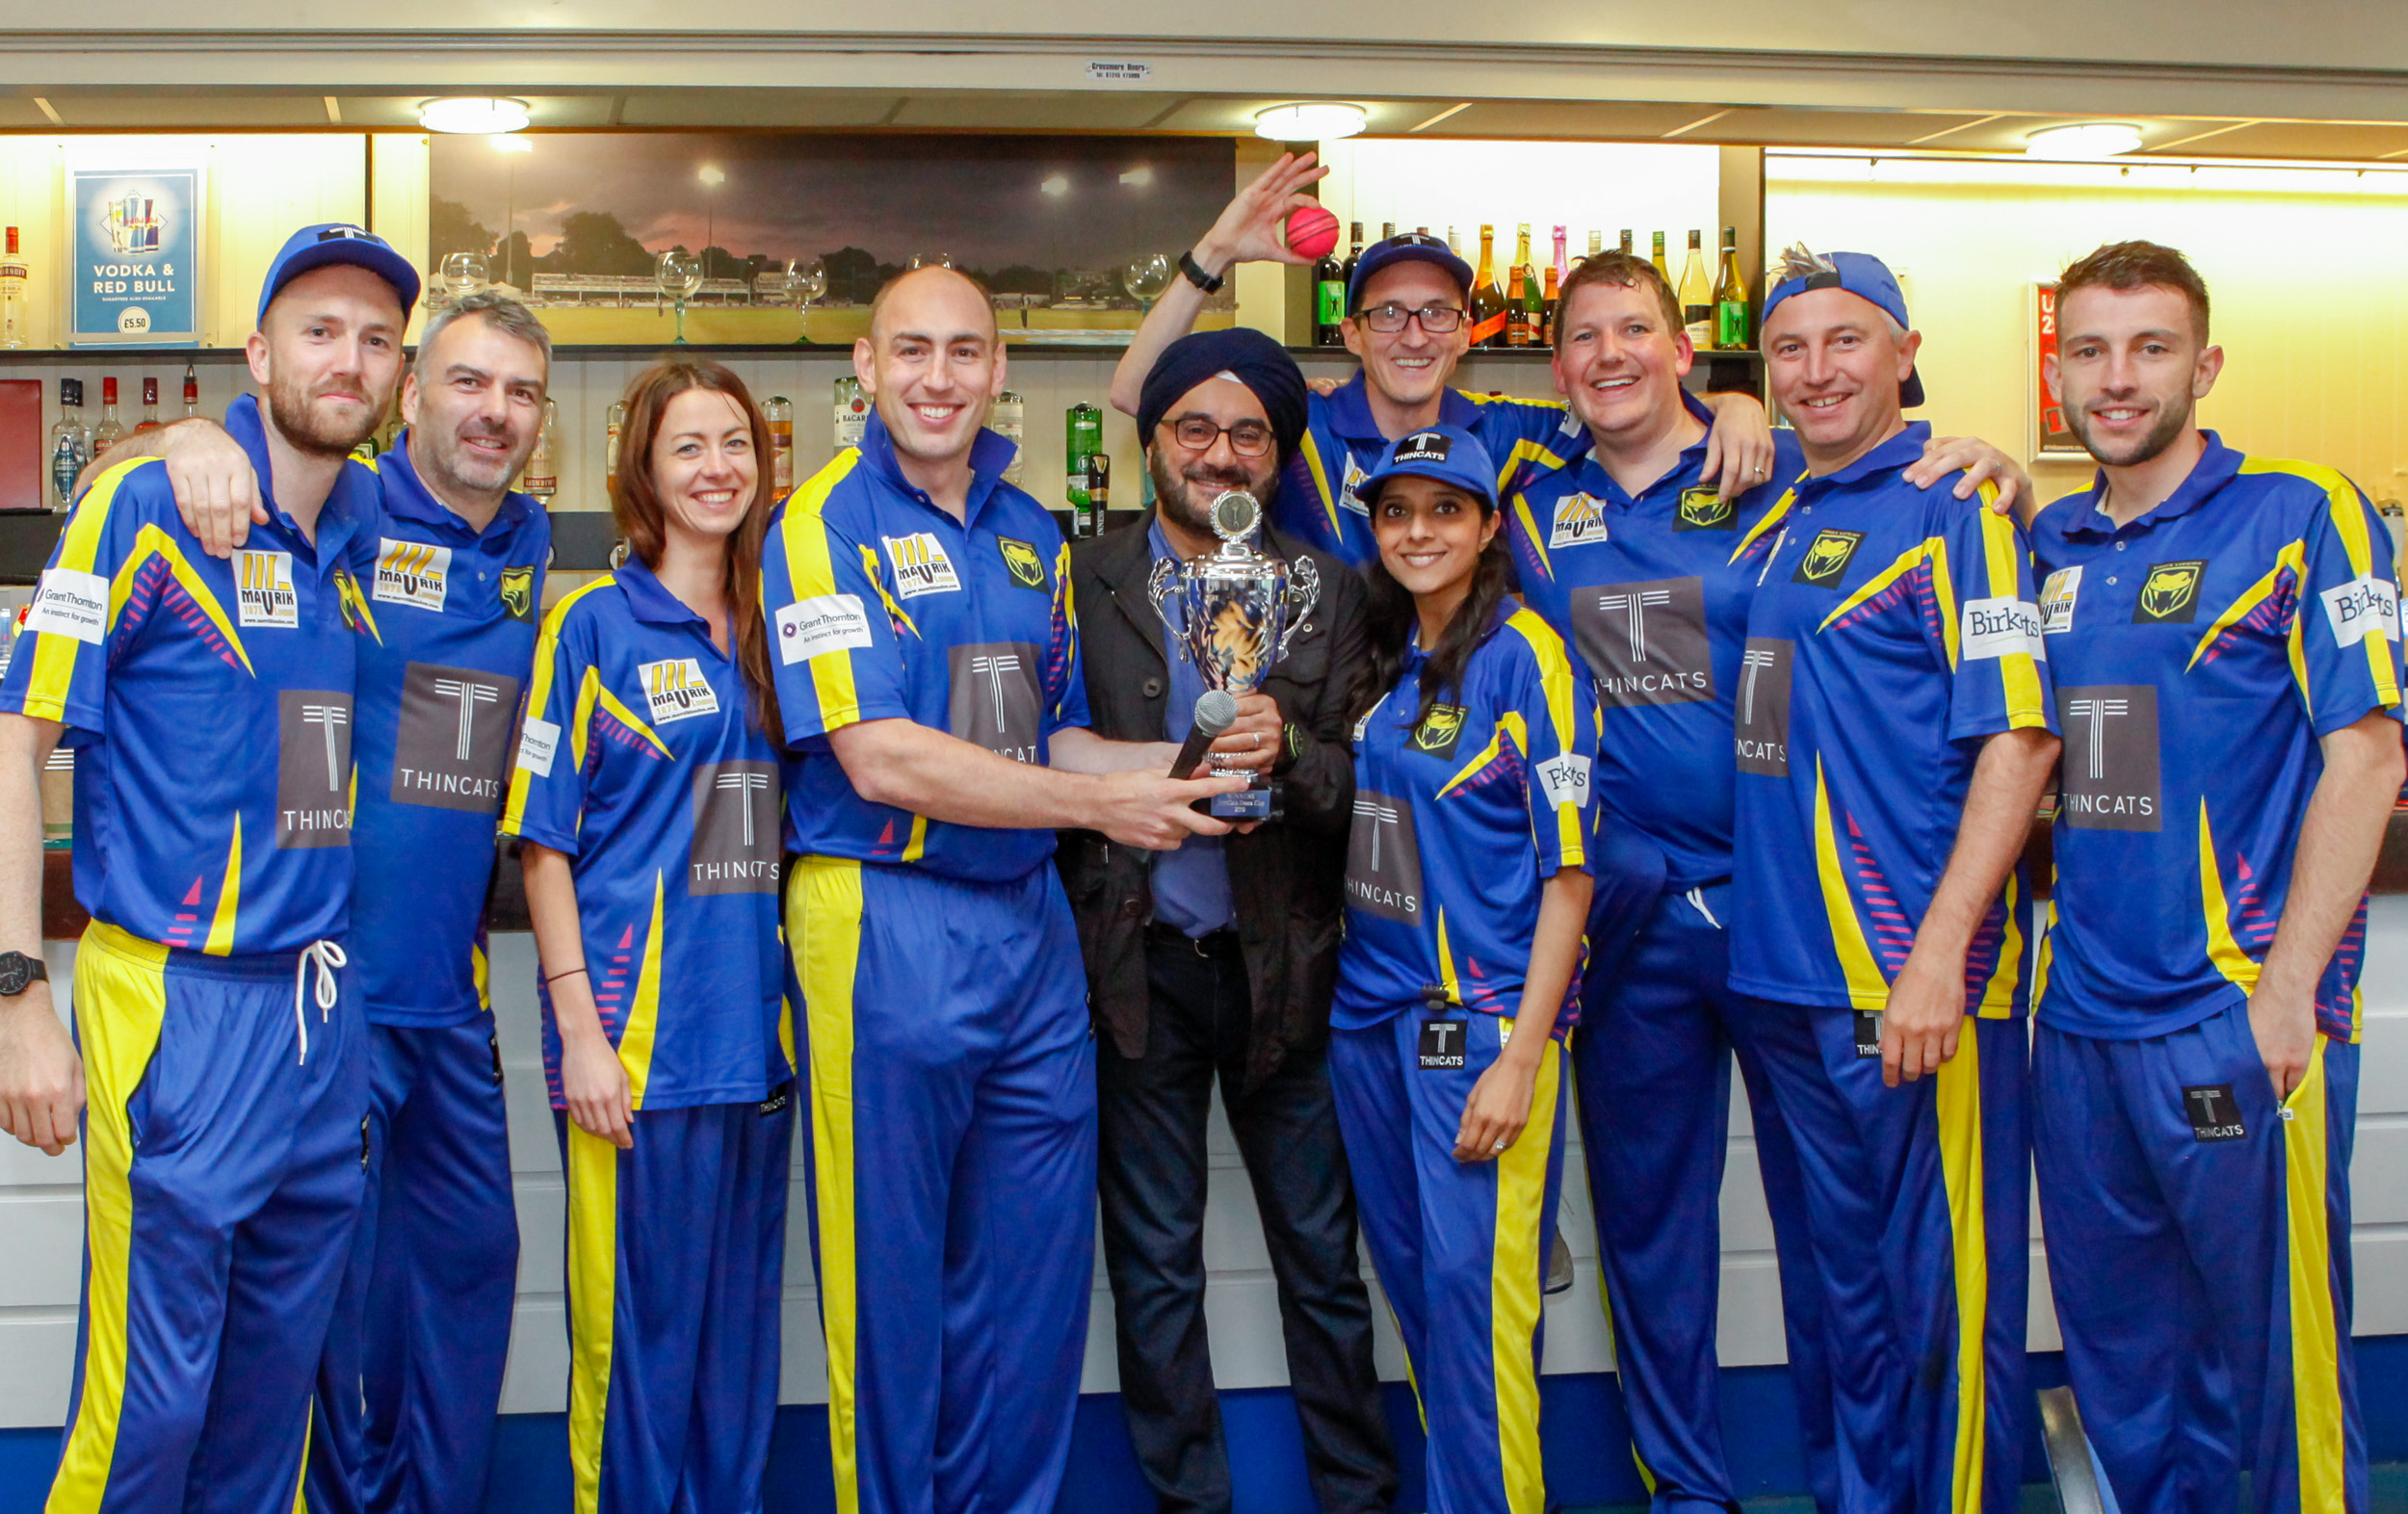 ThinCats MD, Ravi Anand presenting the Essex Vipers with the trophy